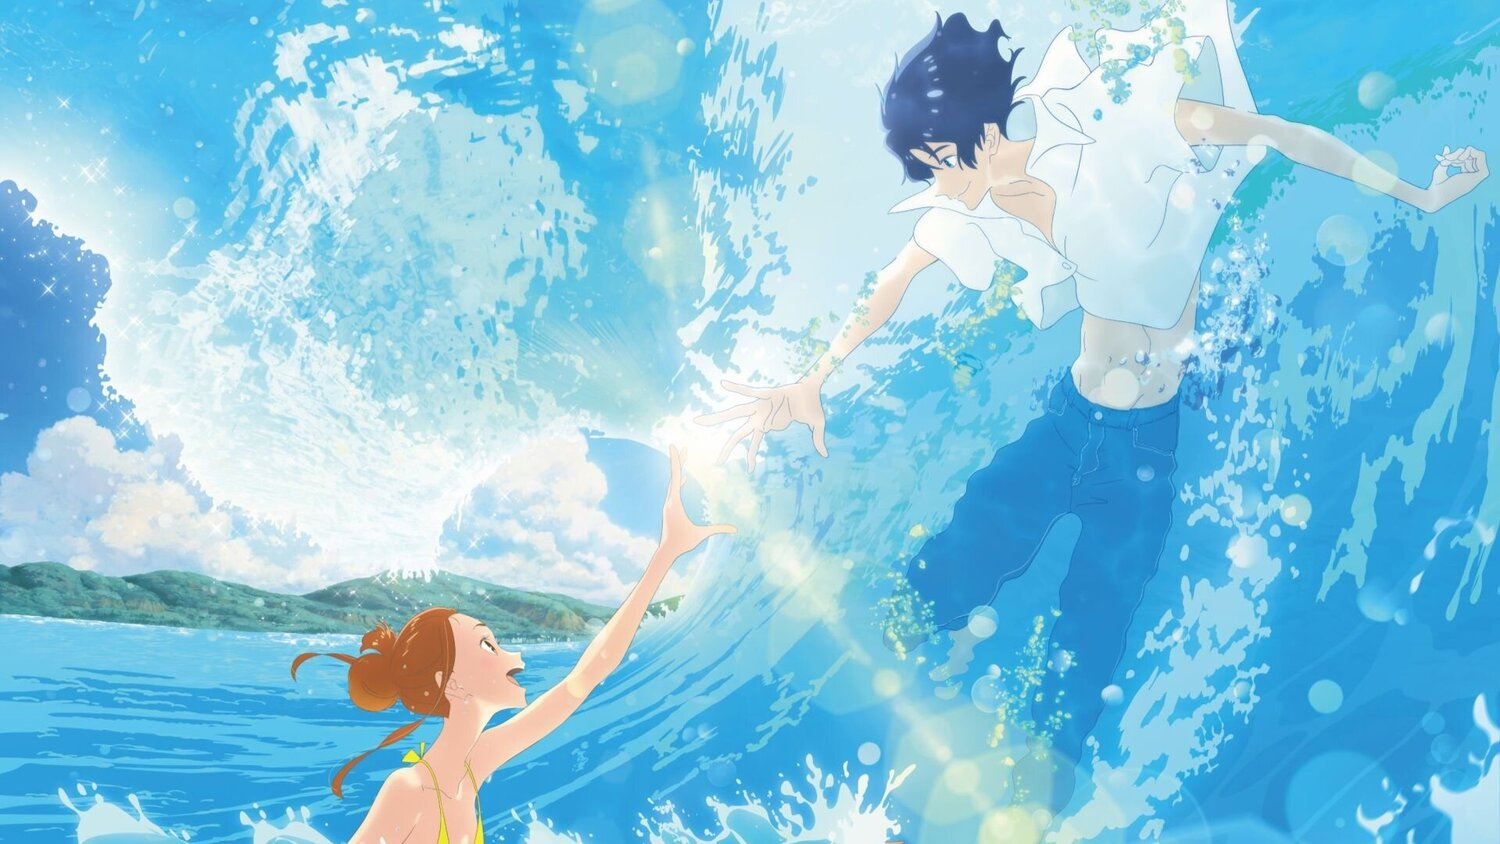 Ride Your Wave Review: Touching anime breaks conventions